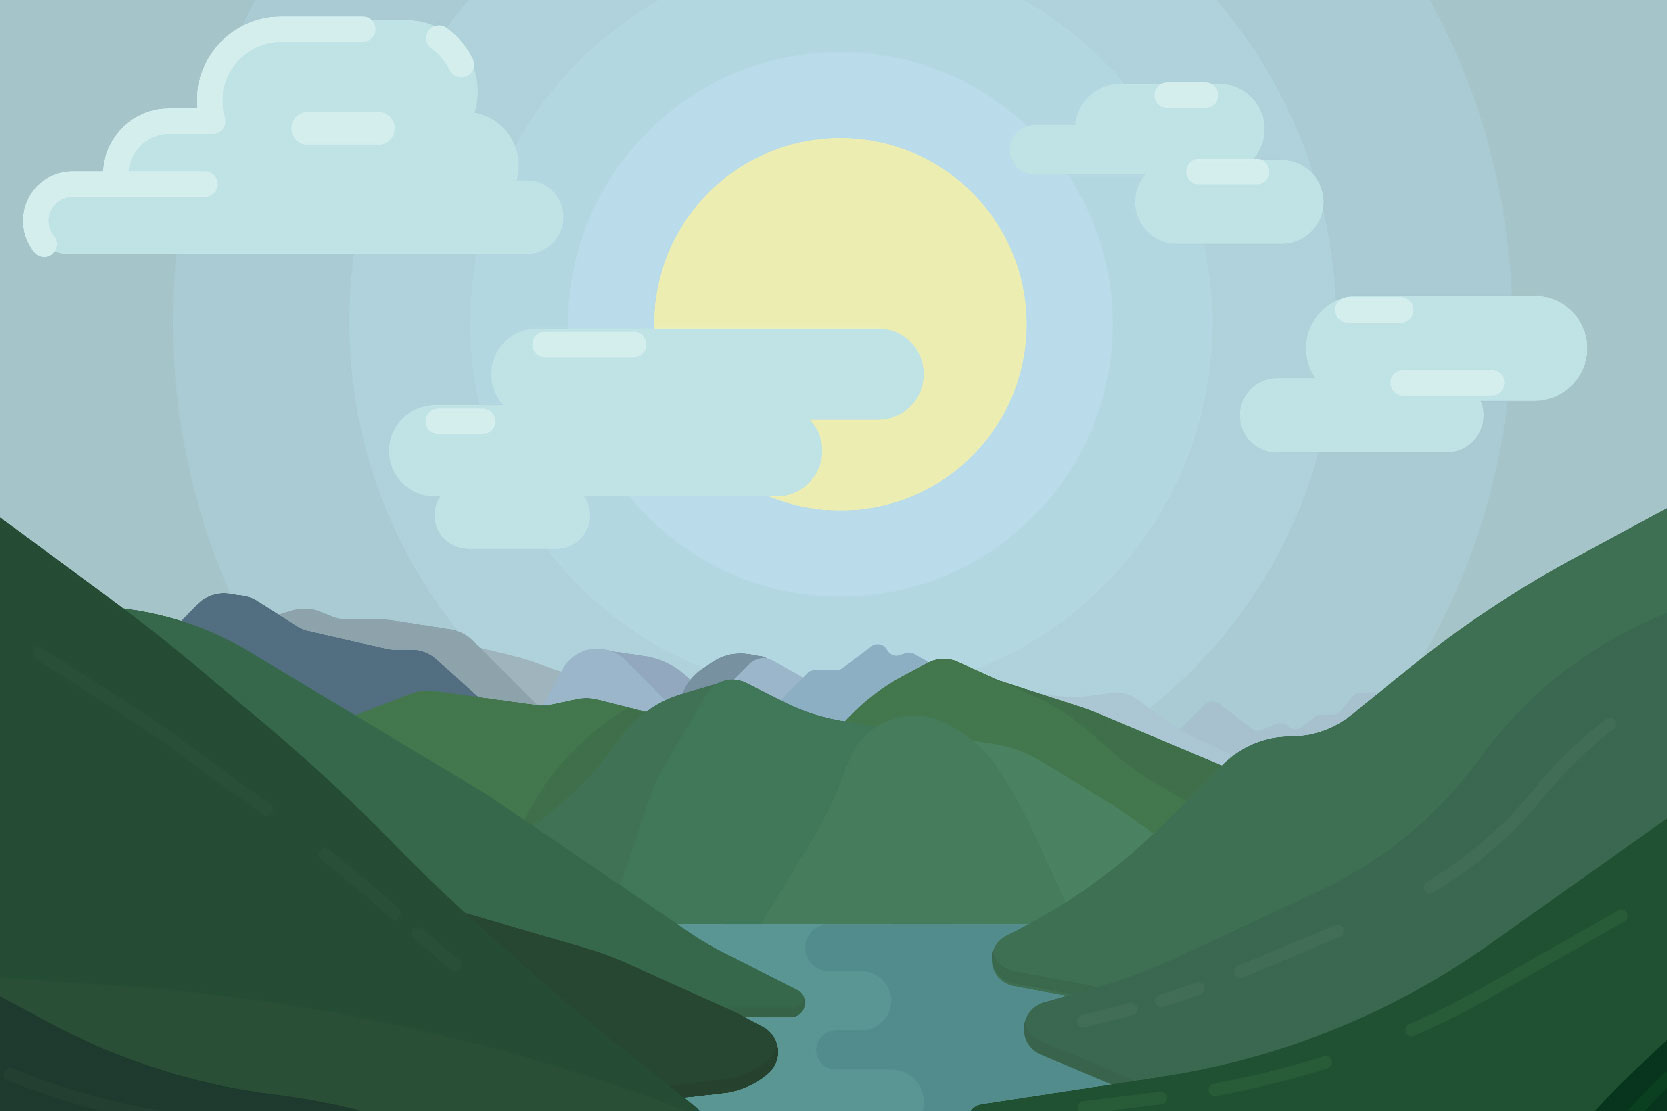 Mountain landscapes - Vector illustrations example image 3